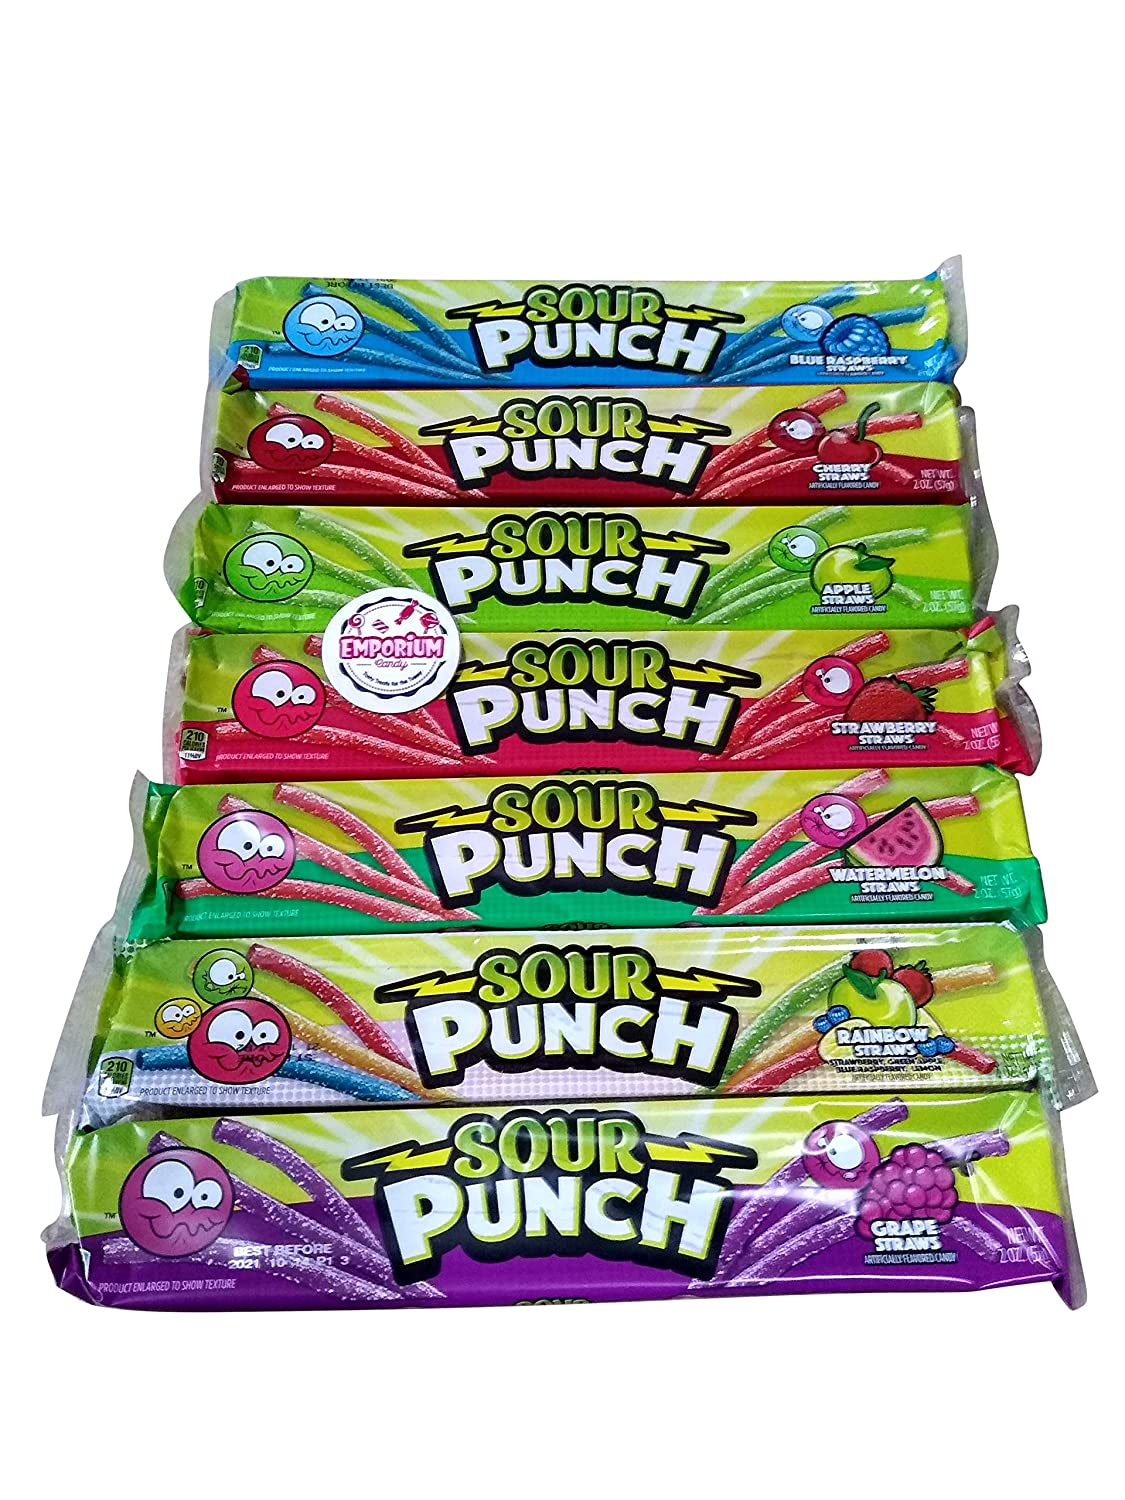 Package of Sour Punch Straws